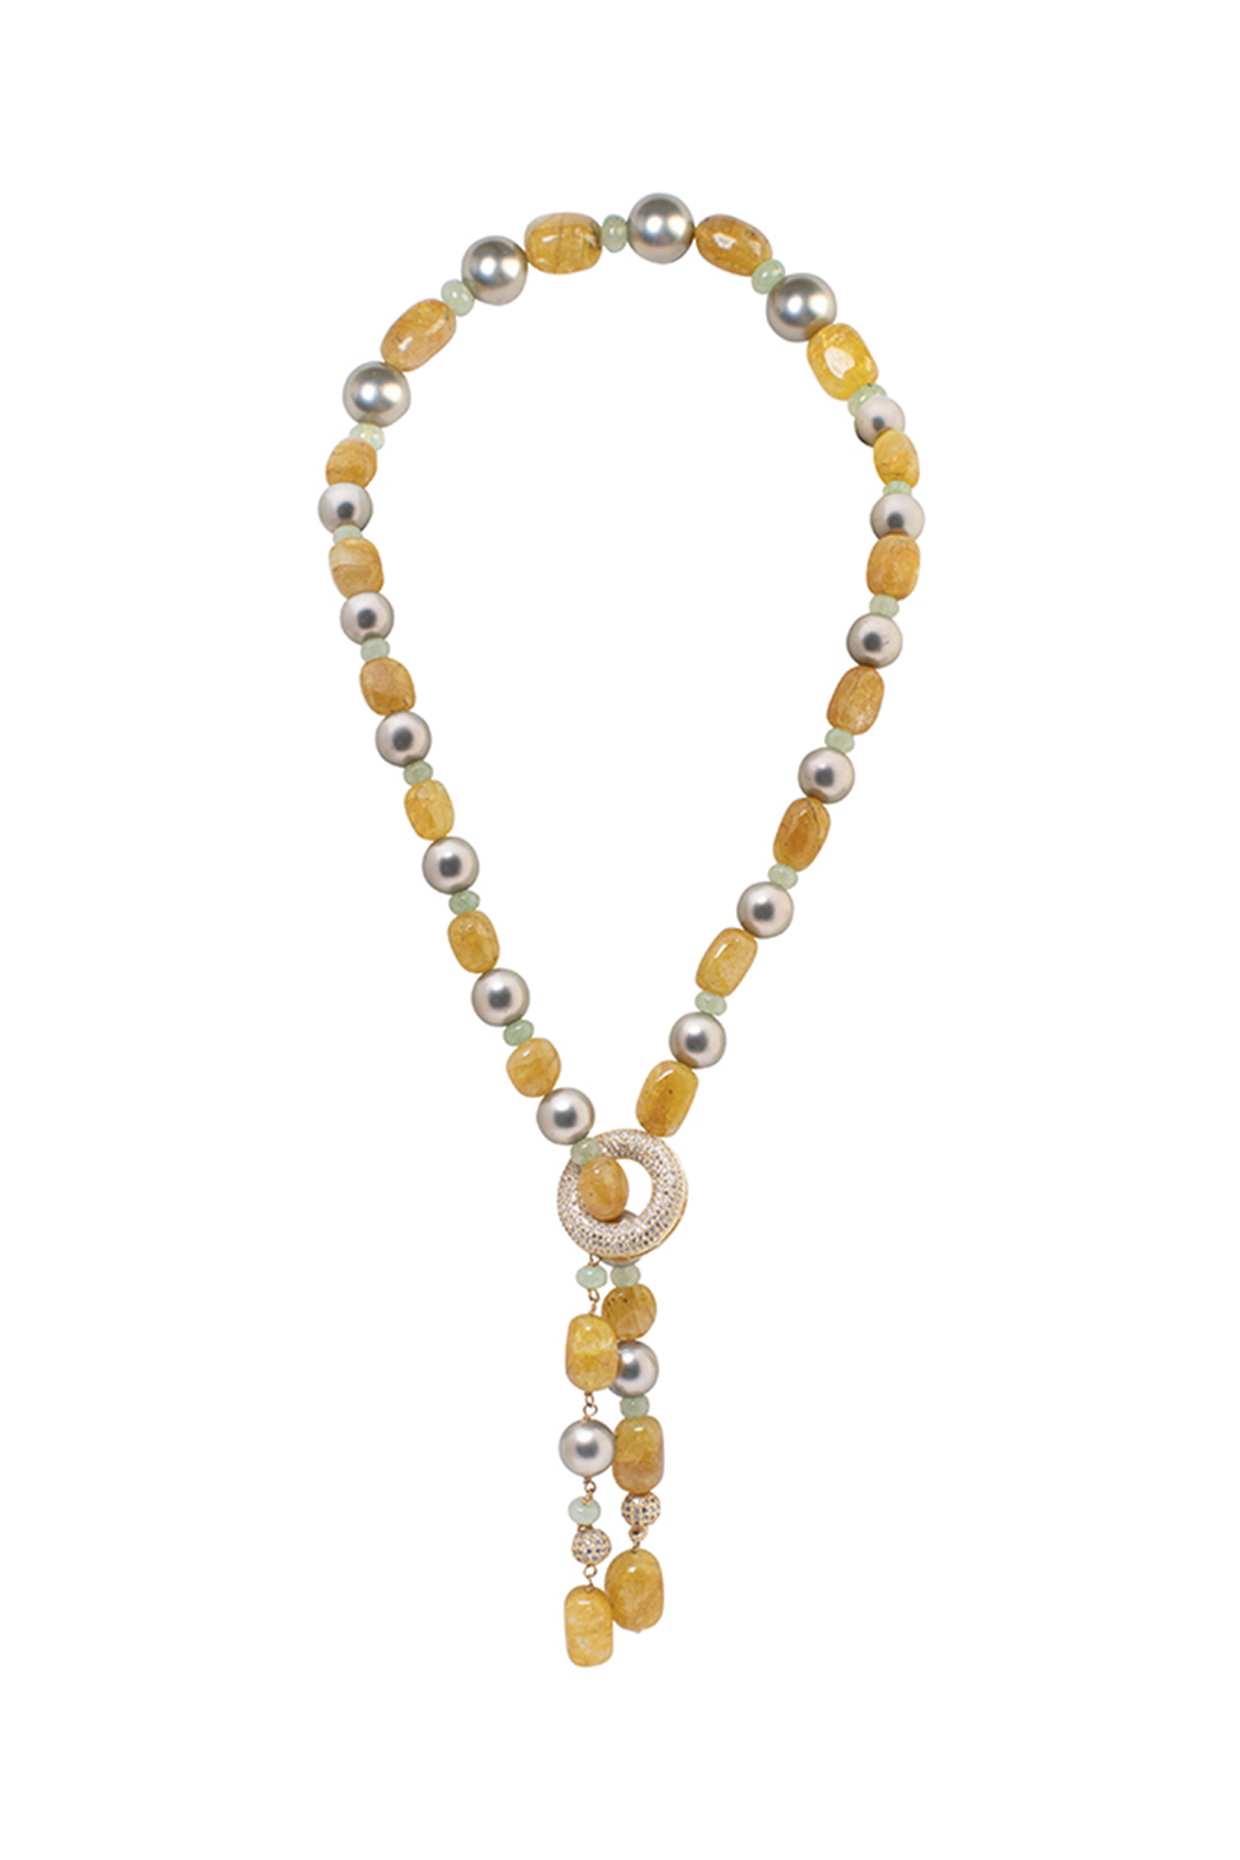 Gold Finish Quartz Beaded Necklace by Joules By Radhika